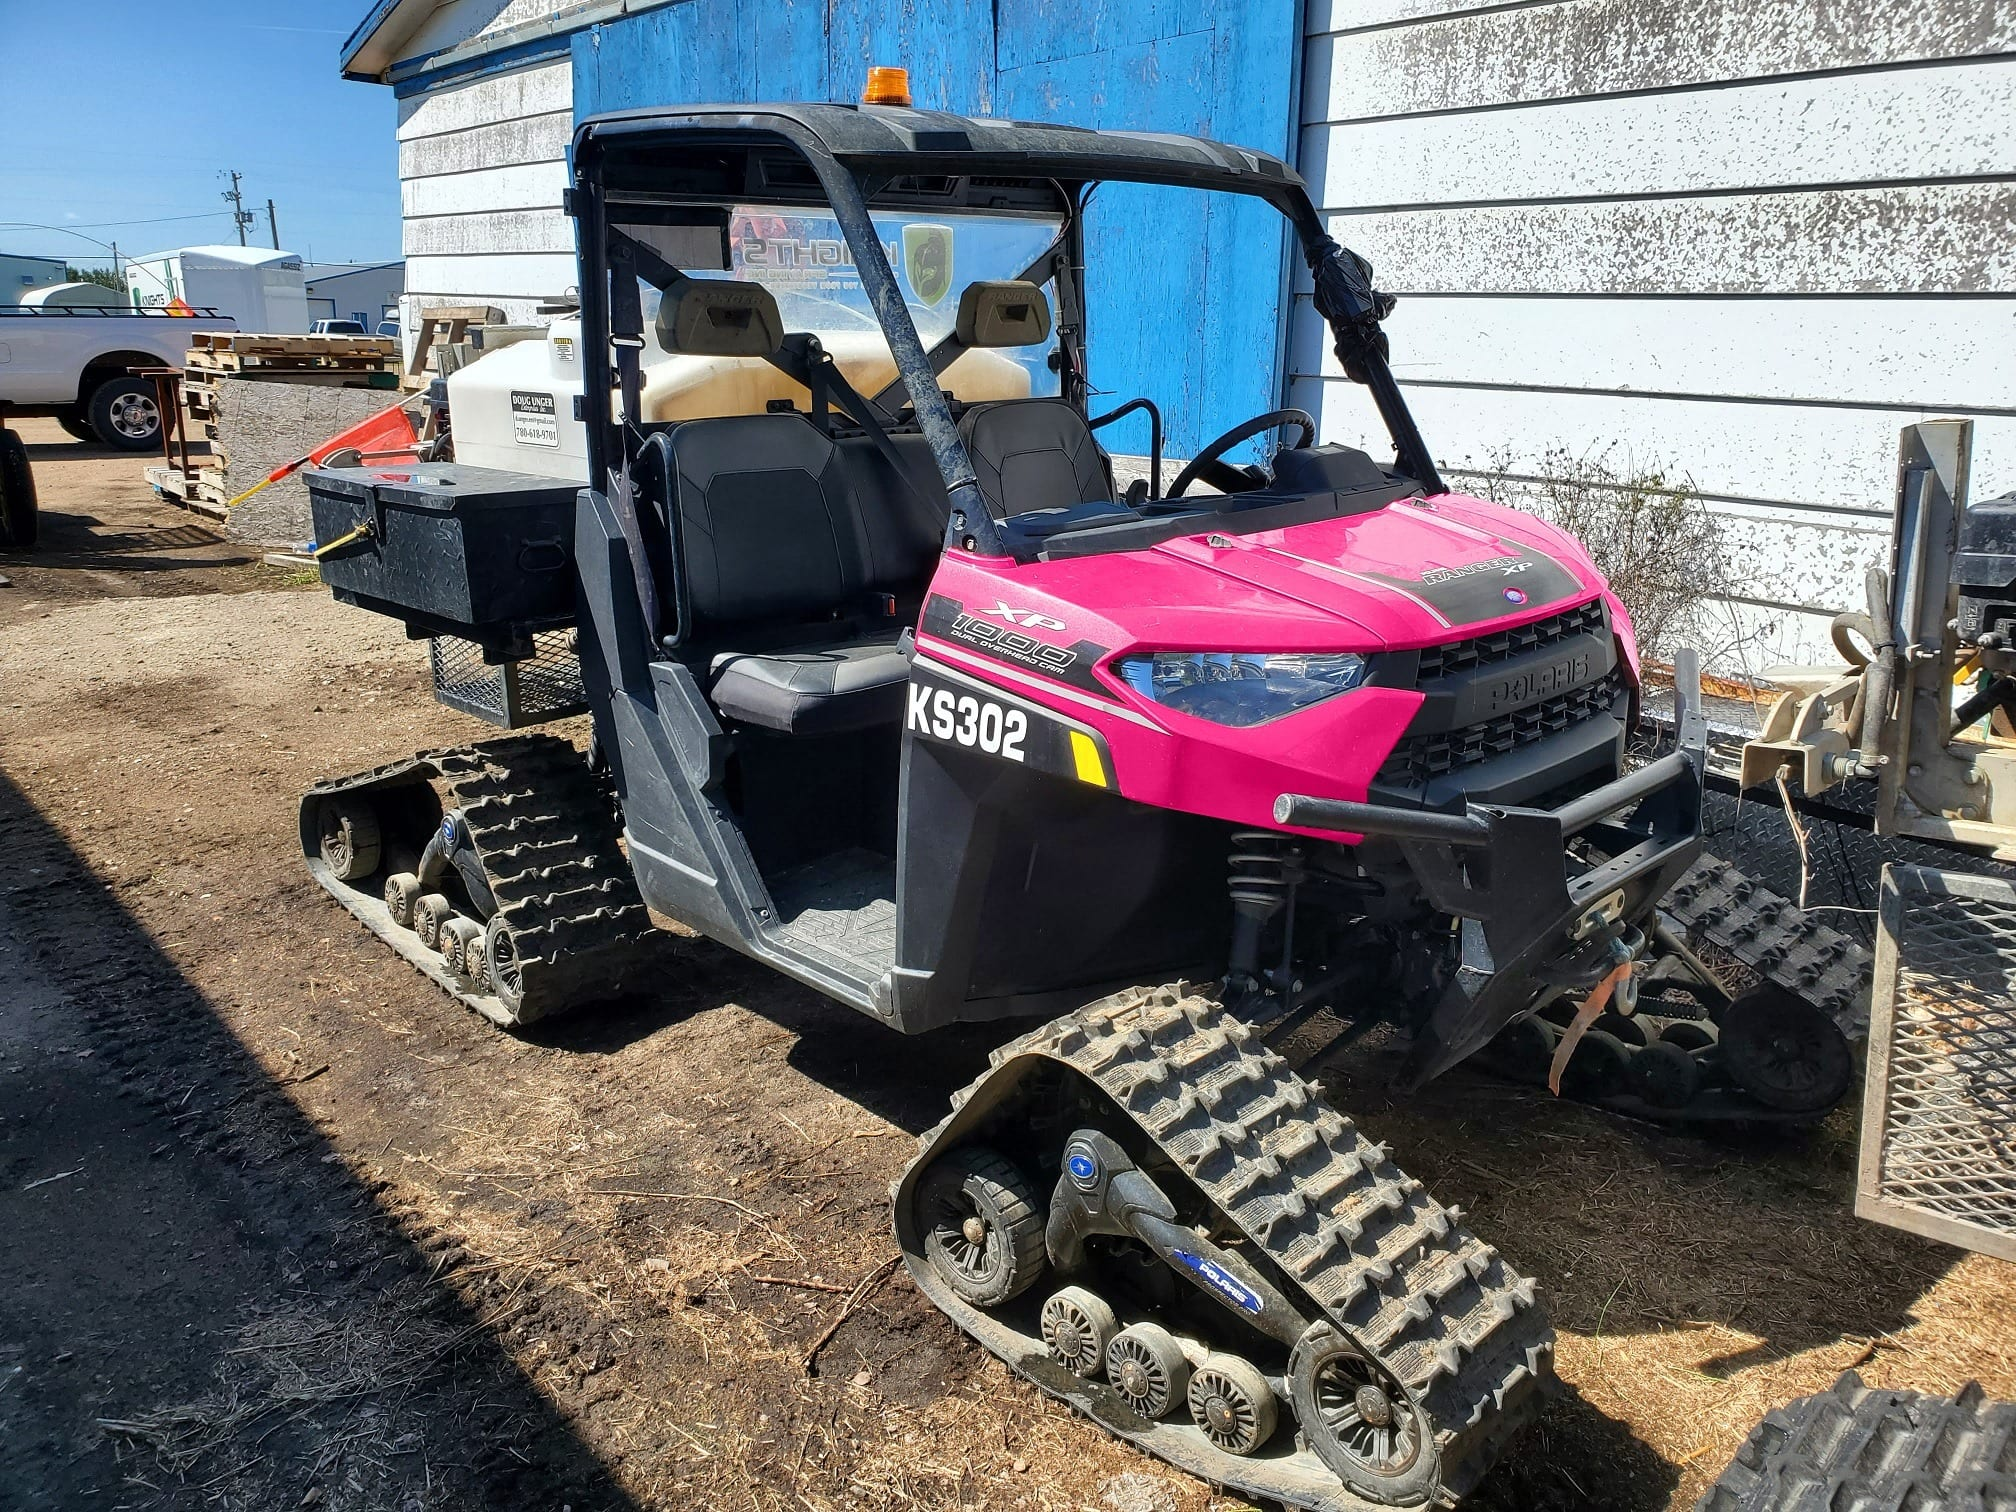 Pink Tractor used to transport Knights!